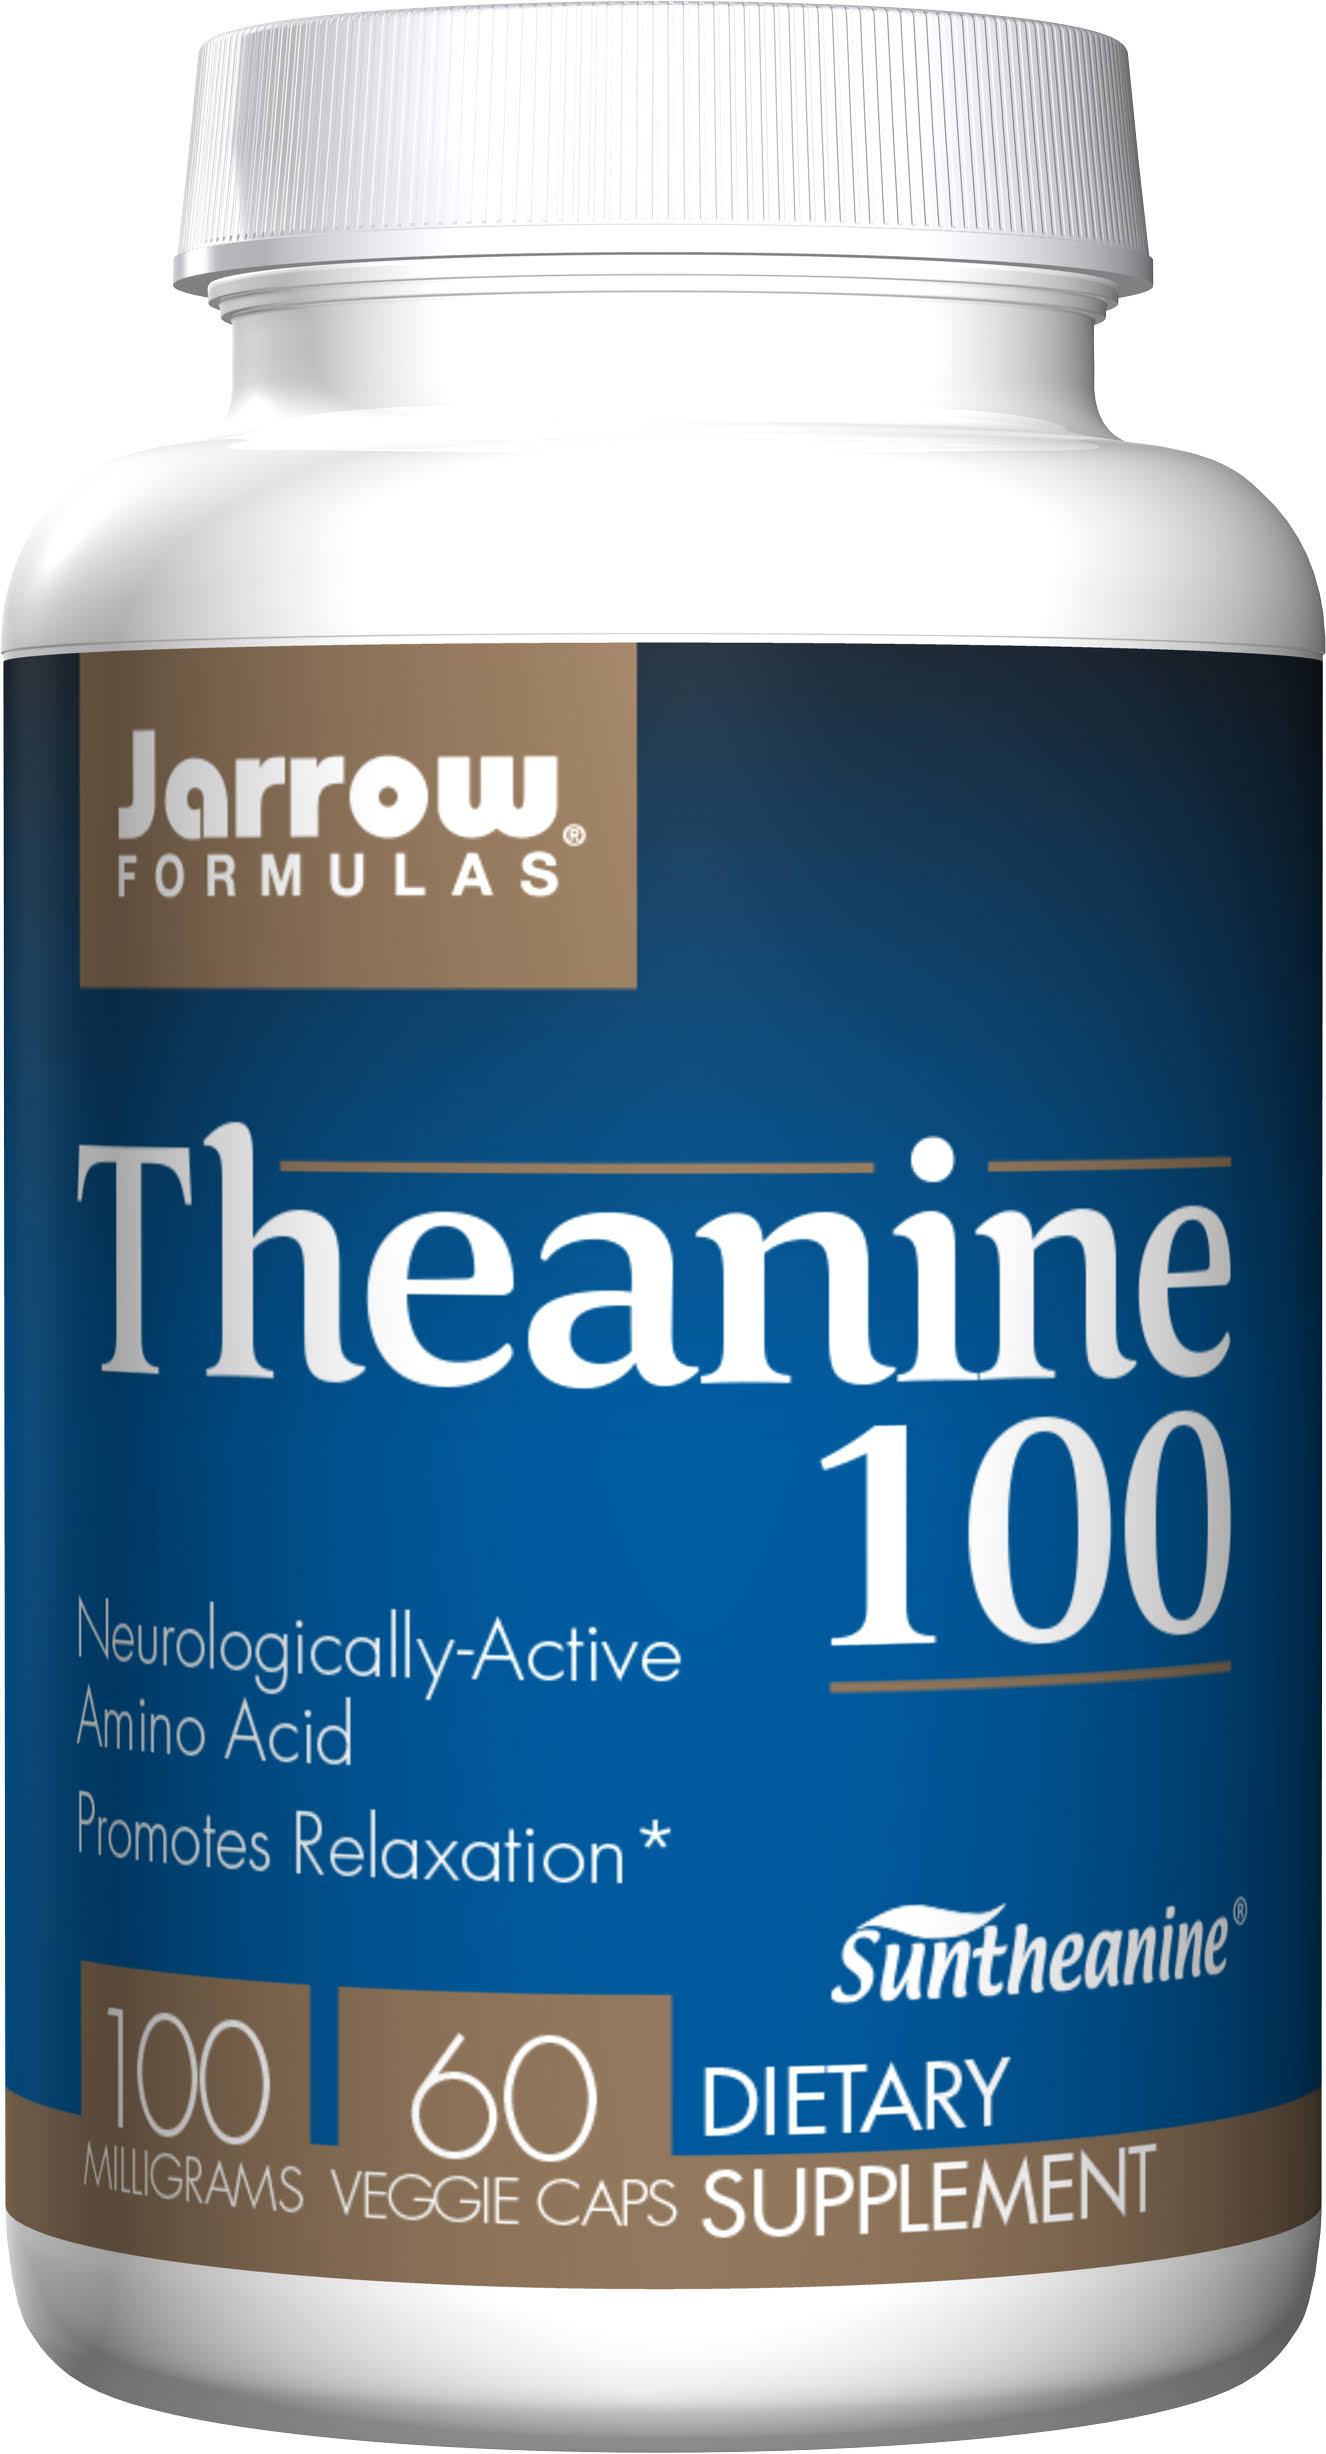 Jarrow Formulas Theanine 100mg Supplement - 60 Capsules